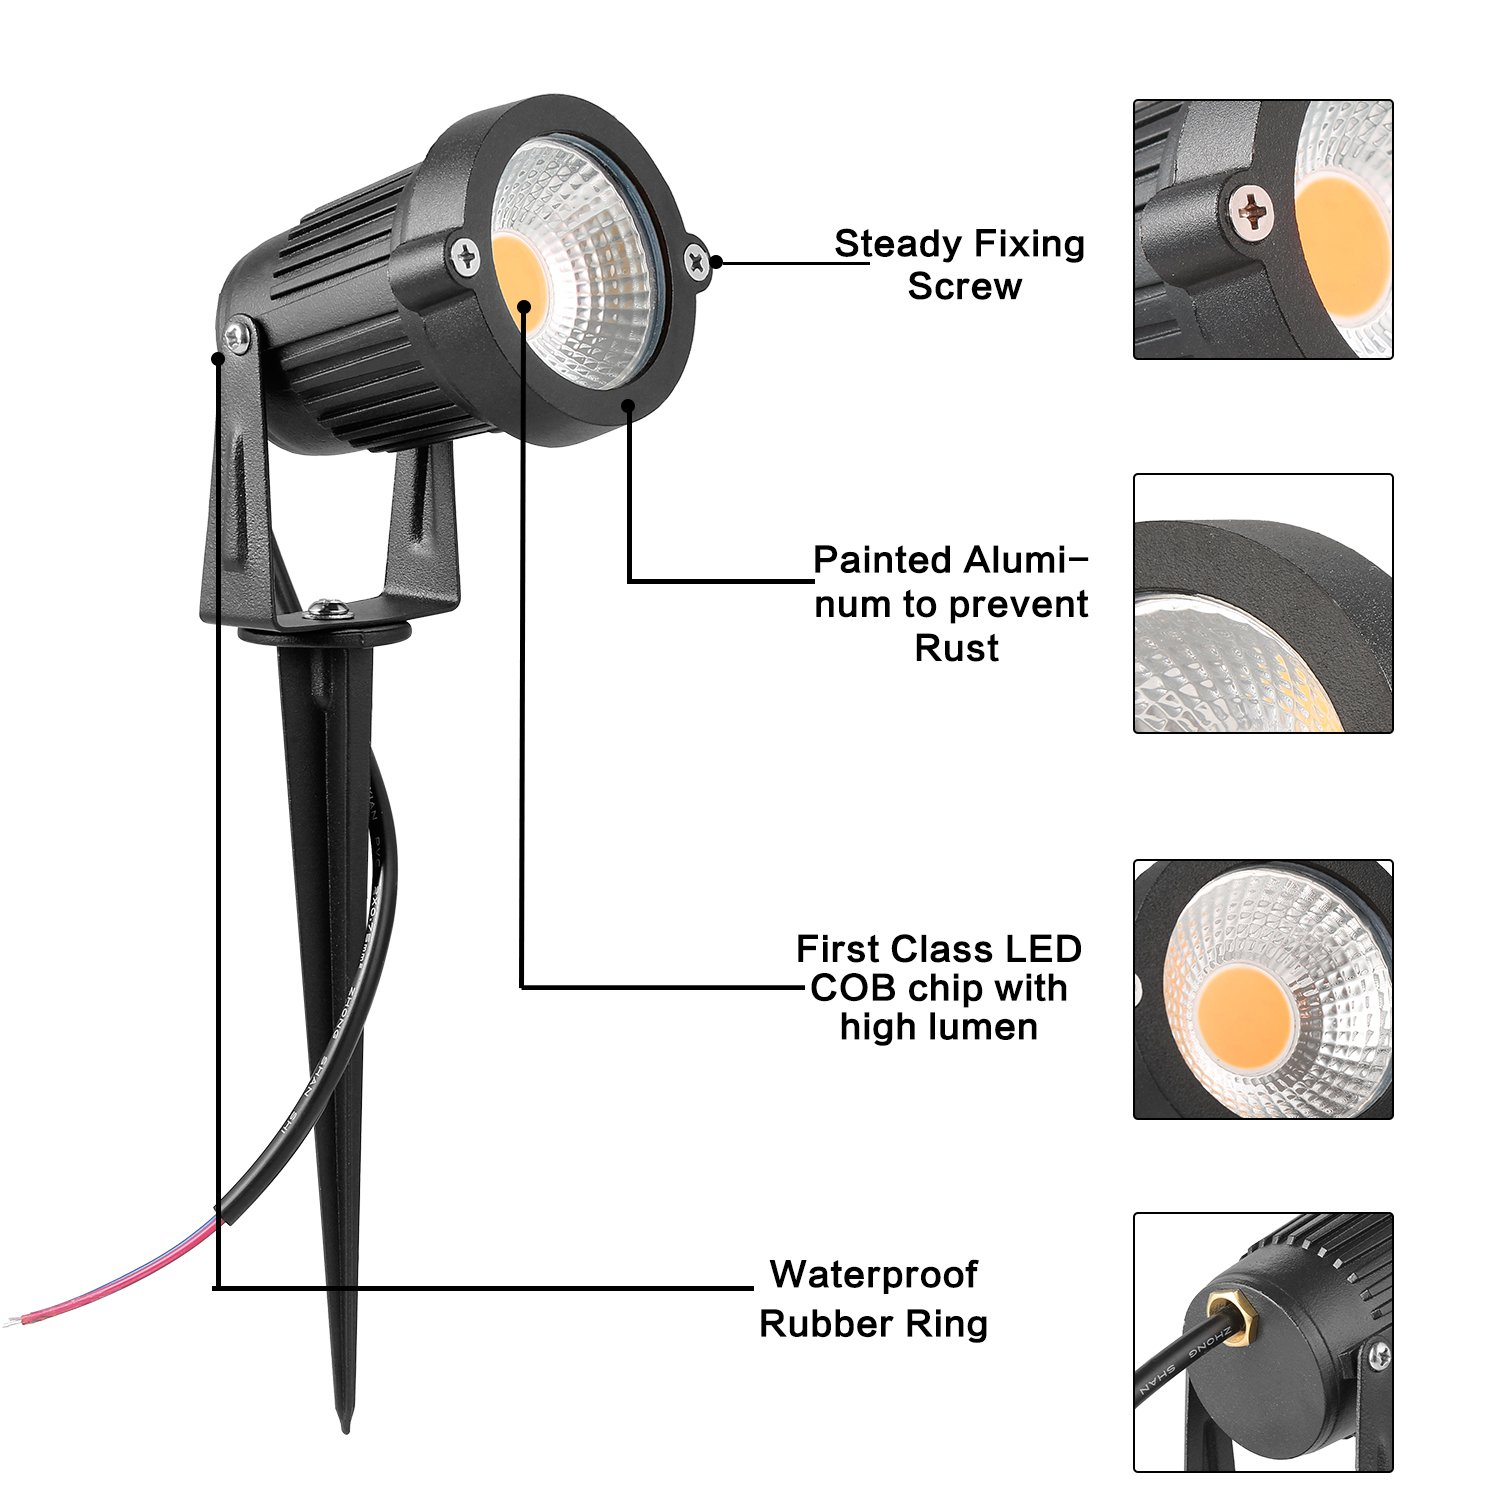 Zuckeo 5w Led Landscape Lights 12v 24v Garden Waterproof Warm Accessory Spotlight Wiring Diagram For Motorcycle White Walls Trees Flags Outdoor Spotlights With Spike Stand 8 Pack Patio